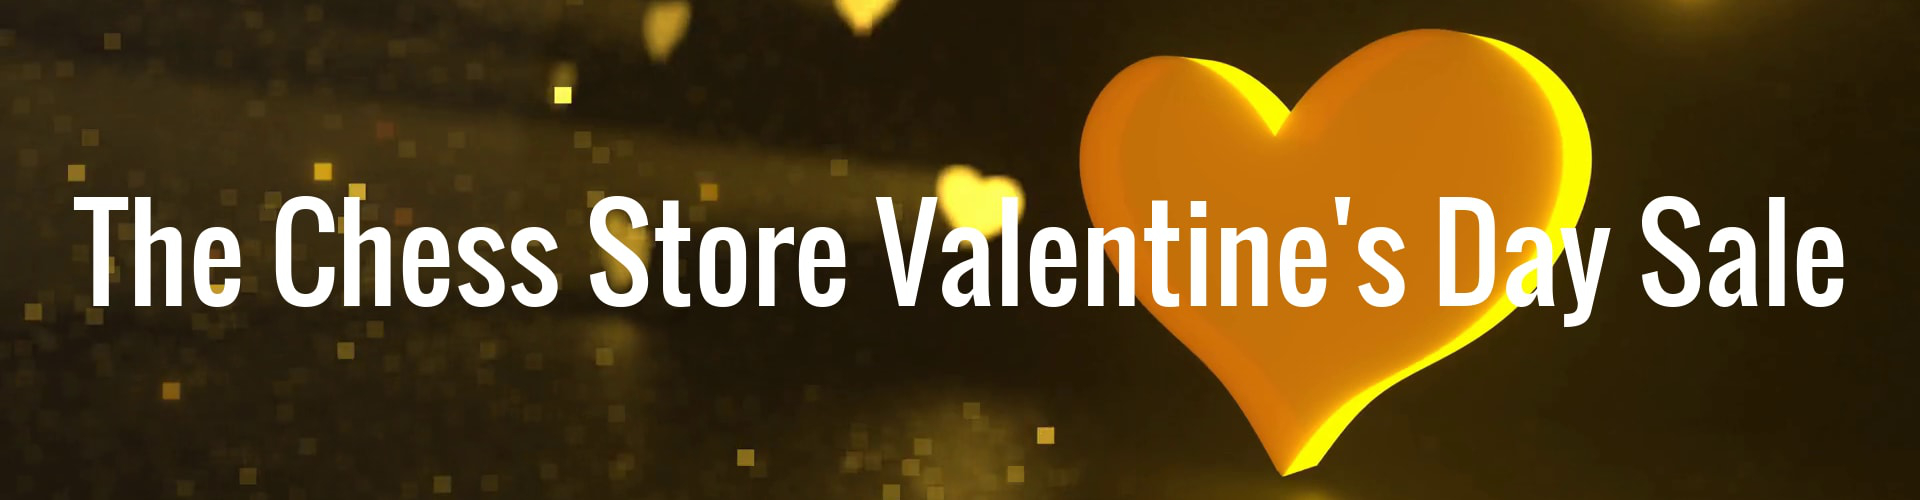 The Chess Store Valentine's Day Sale